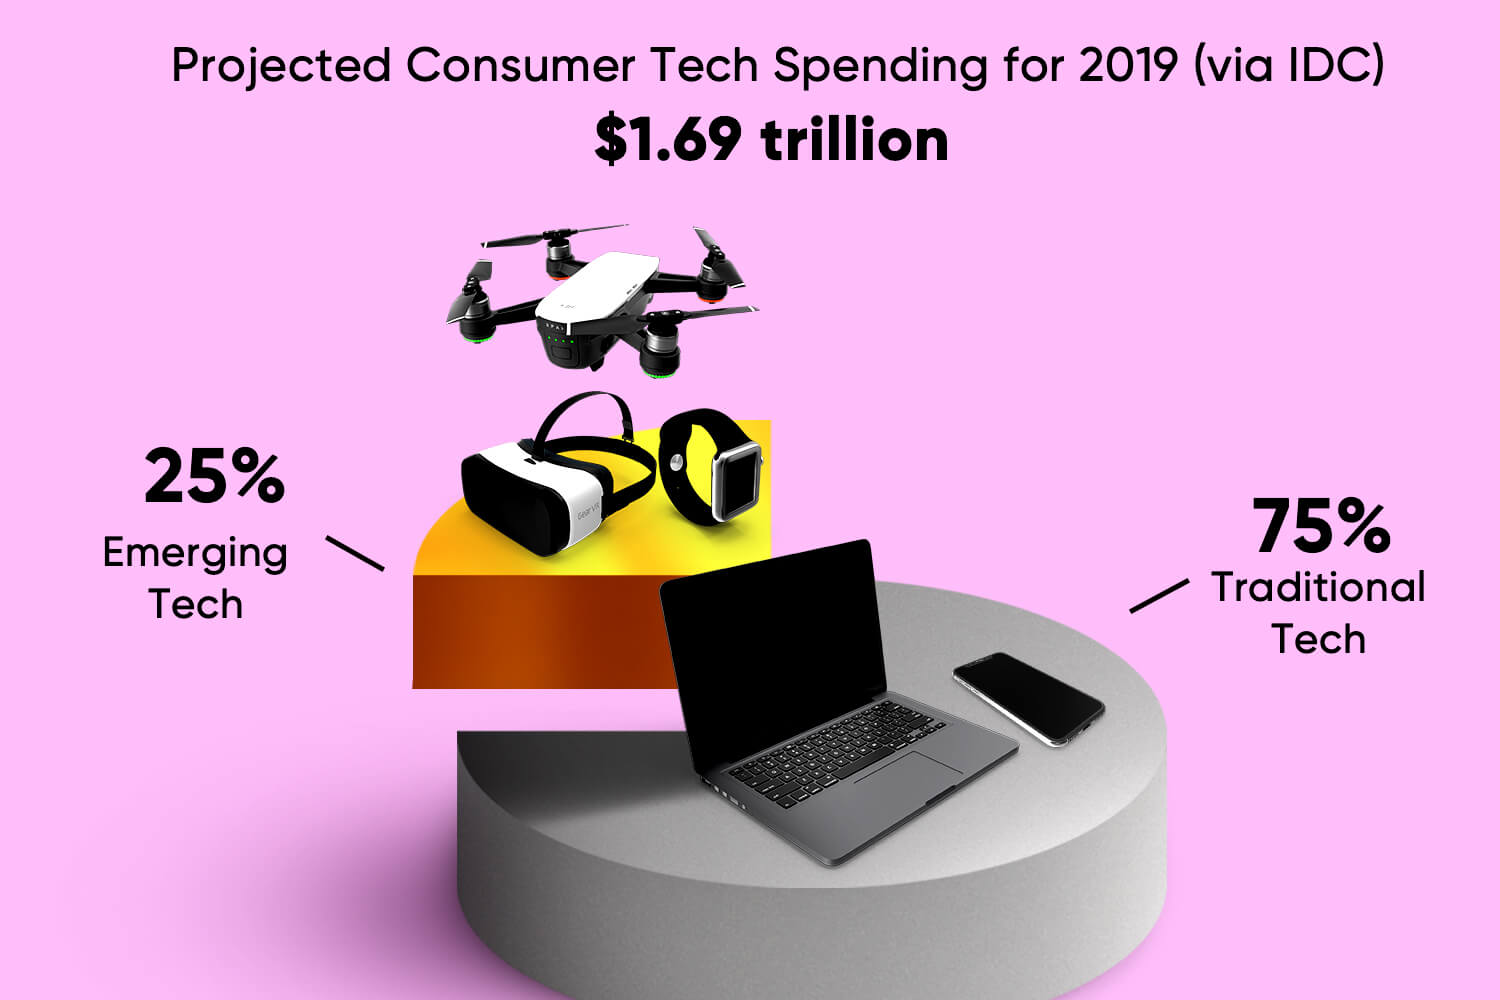 Don't lose sight of how much we're still spending on traditional tech Francis Scialabba/data via IDC